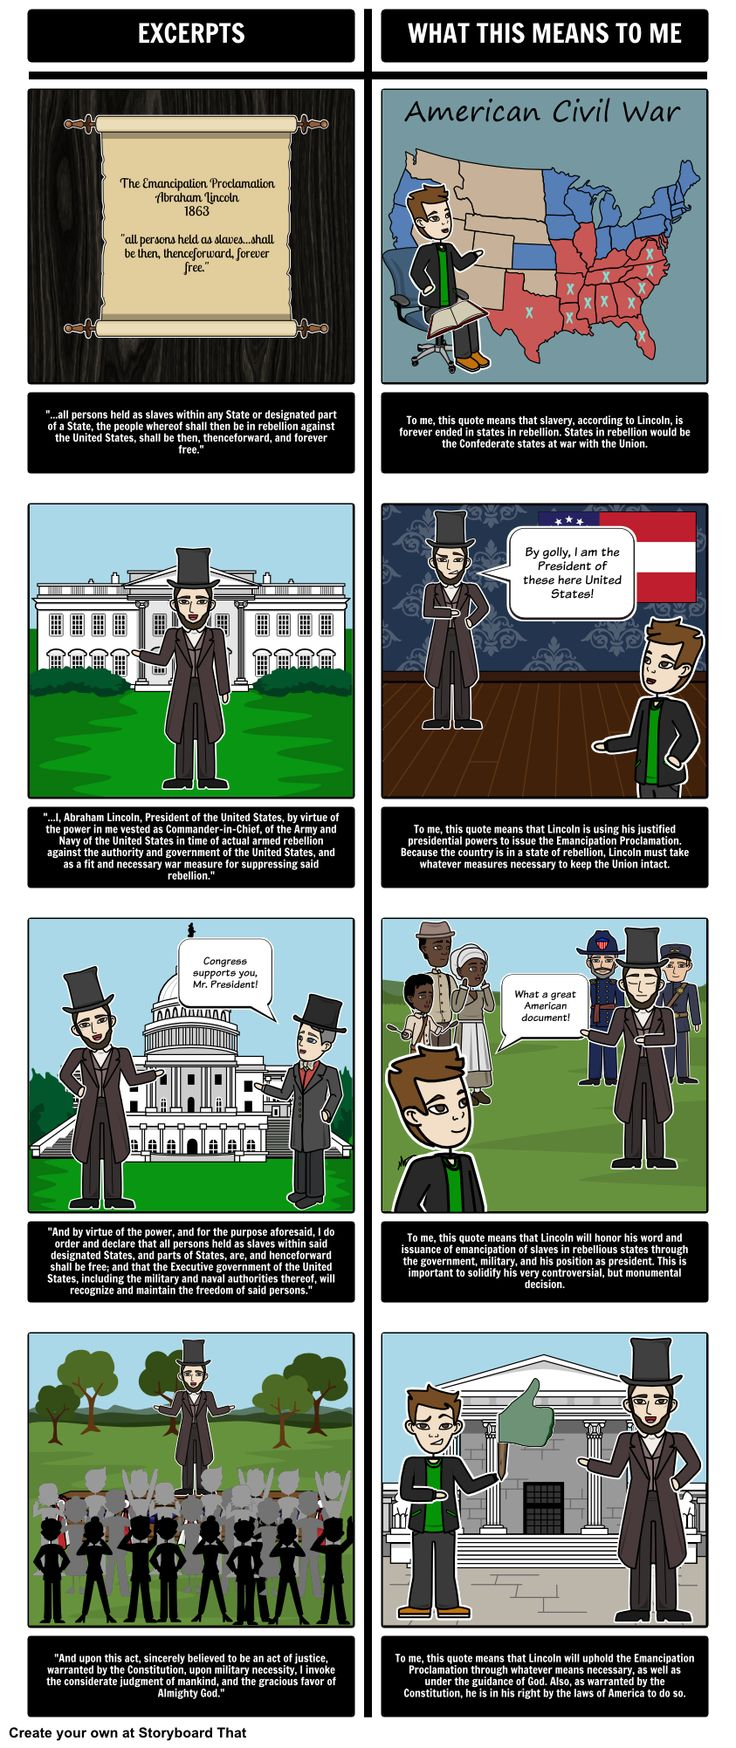 This activity can be used as either an introductory assignment or exit assignment. Students will interpret excerpts from the Emancipation Proclamation and articulate what each excerpt means to them.